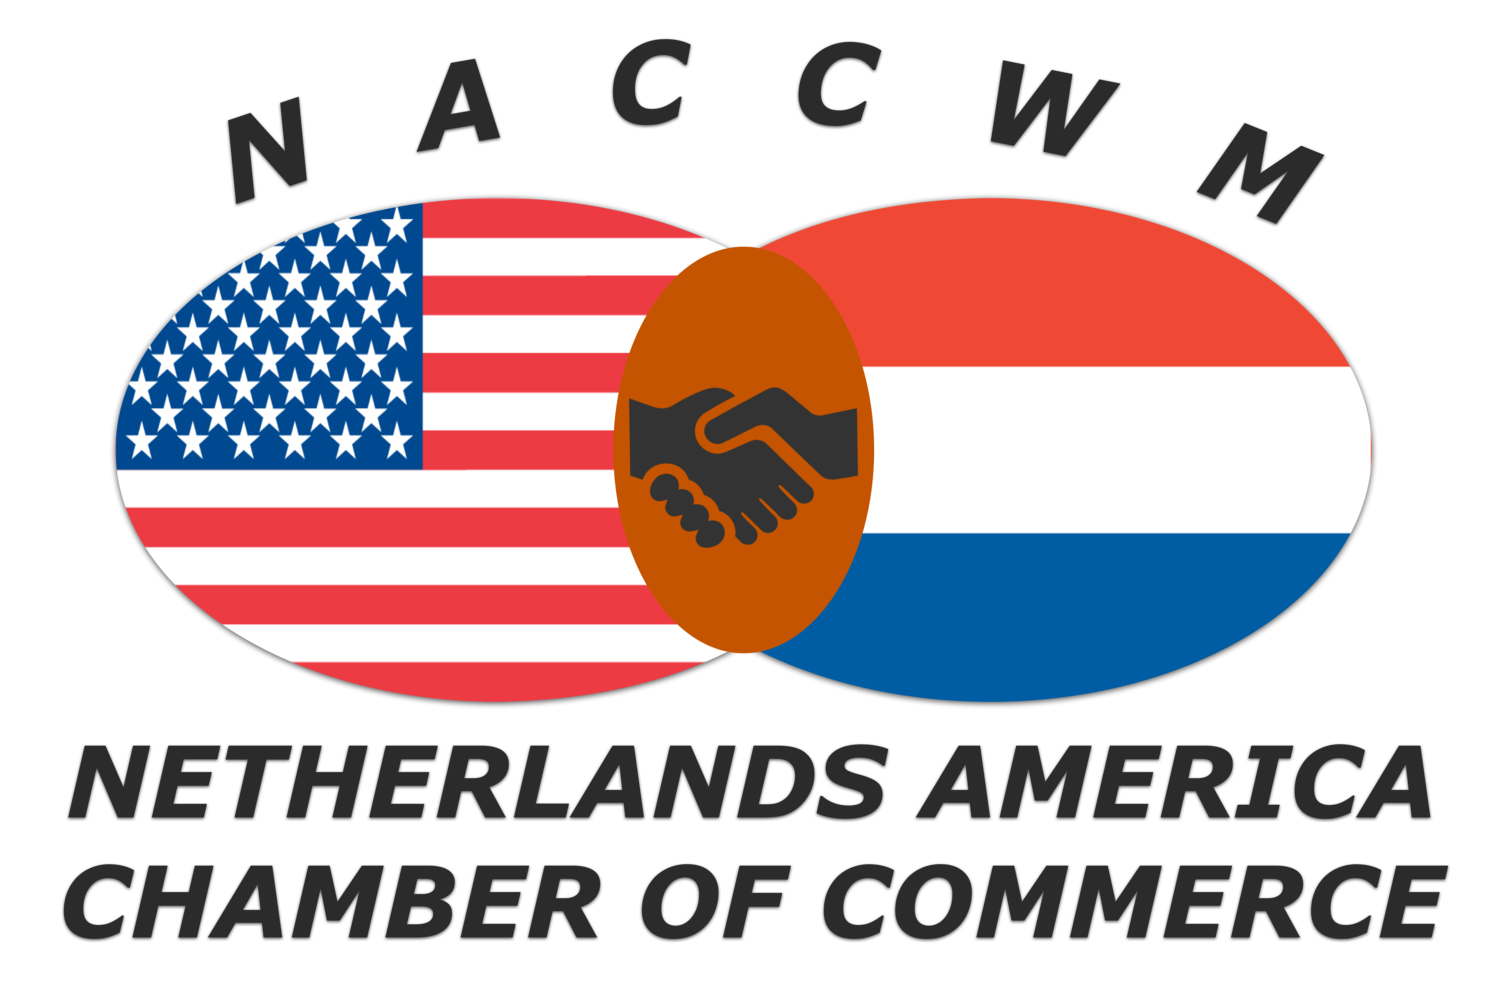 Netherlands America Chamber of Commerce Washington Metro